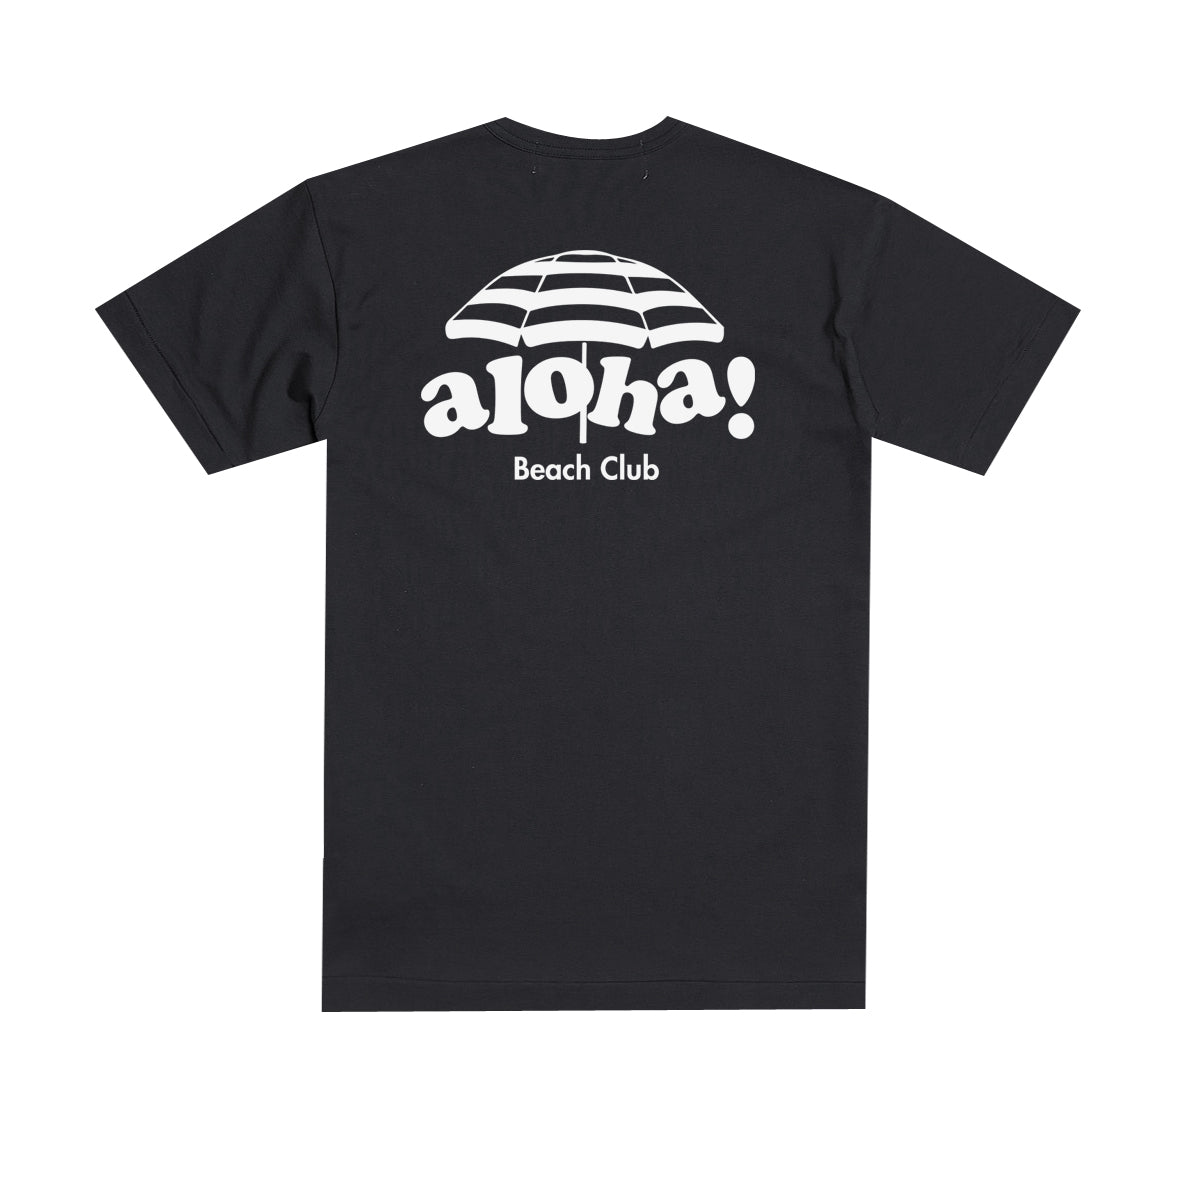 Aloha Beach Club - Shade Tee Black - Aloha Beach Club